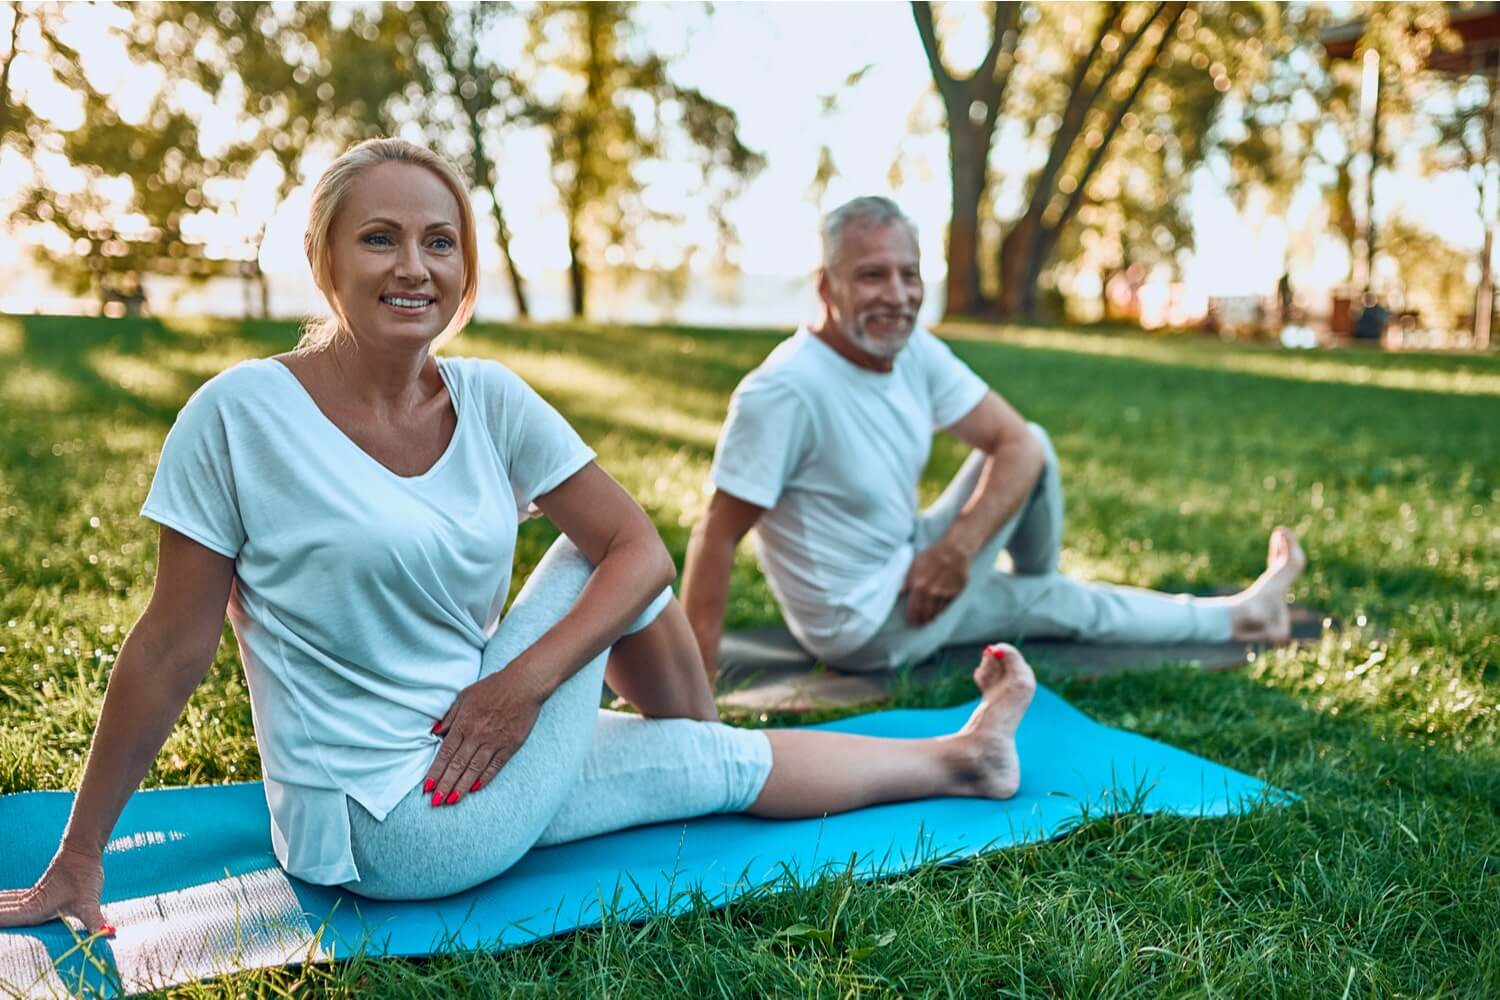 Over 50s couple stay fit and healthy by doing outdoor exercise